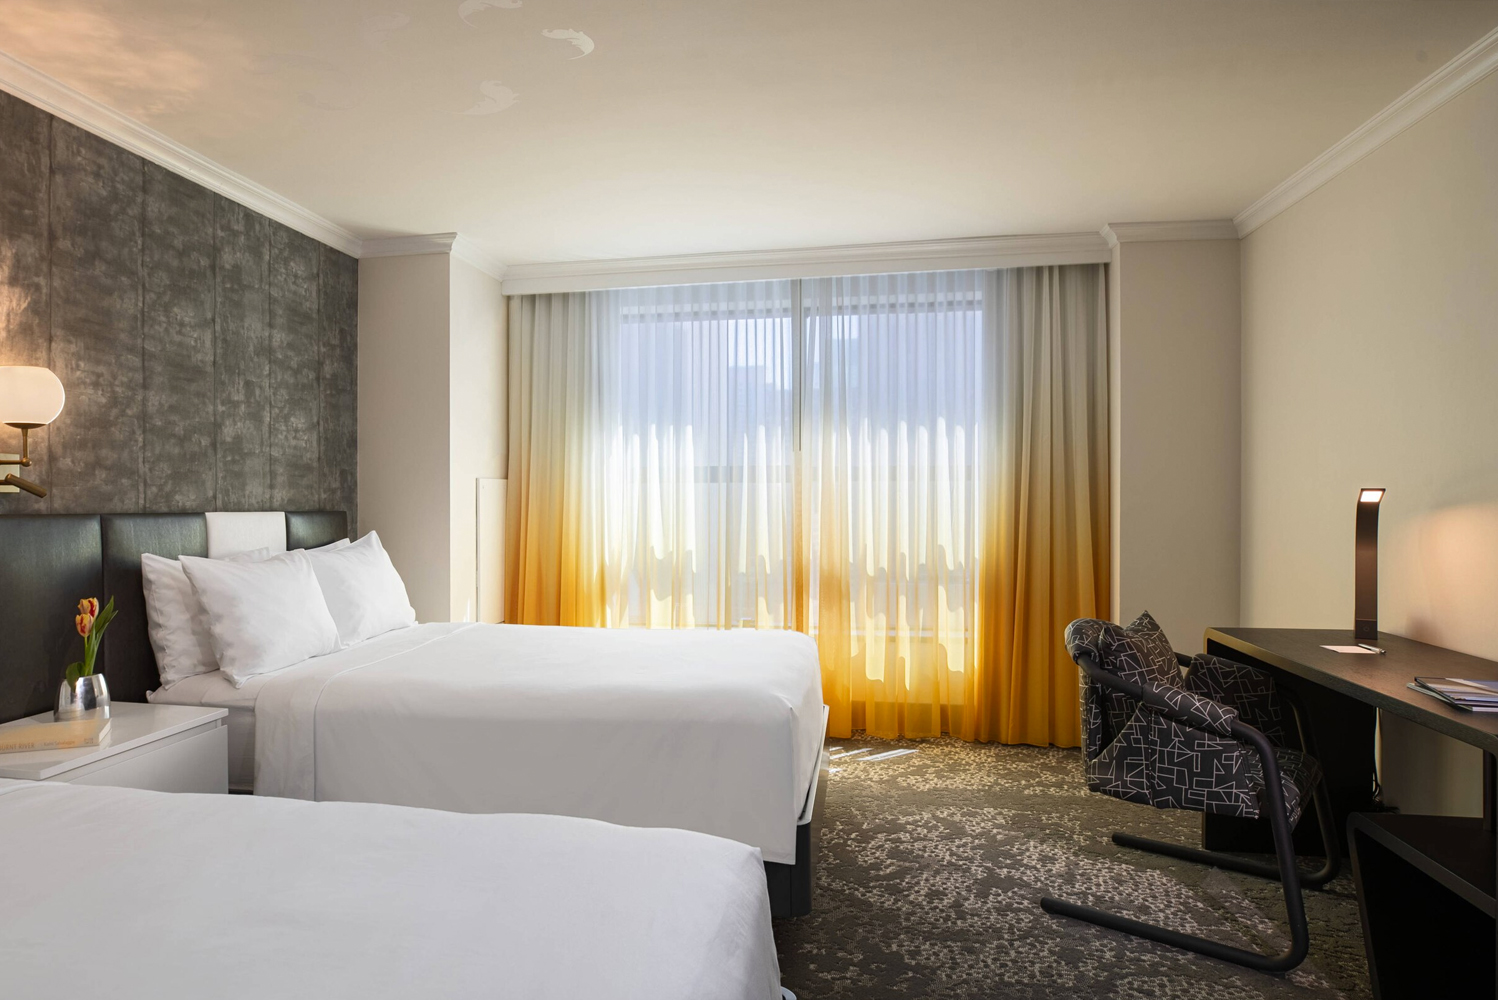 Renaissance New York Times Square completely redesigned its 317 guestrooms and suites, following the earlier completion of its terrace suites.